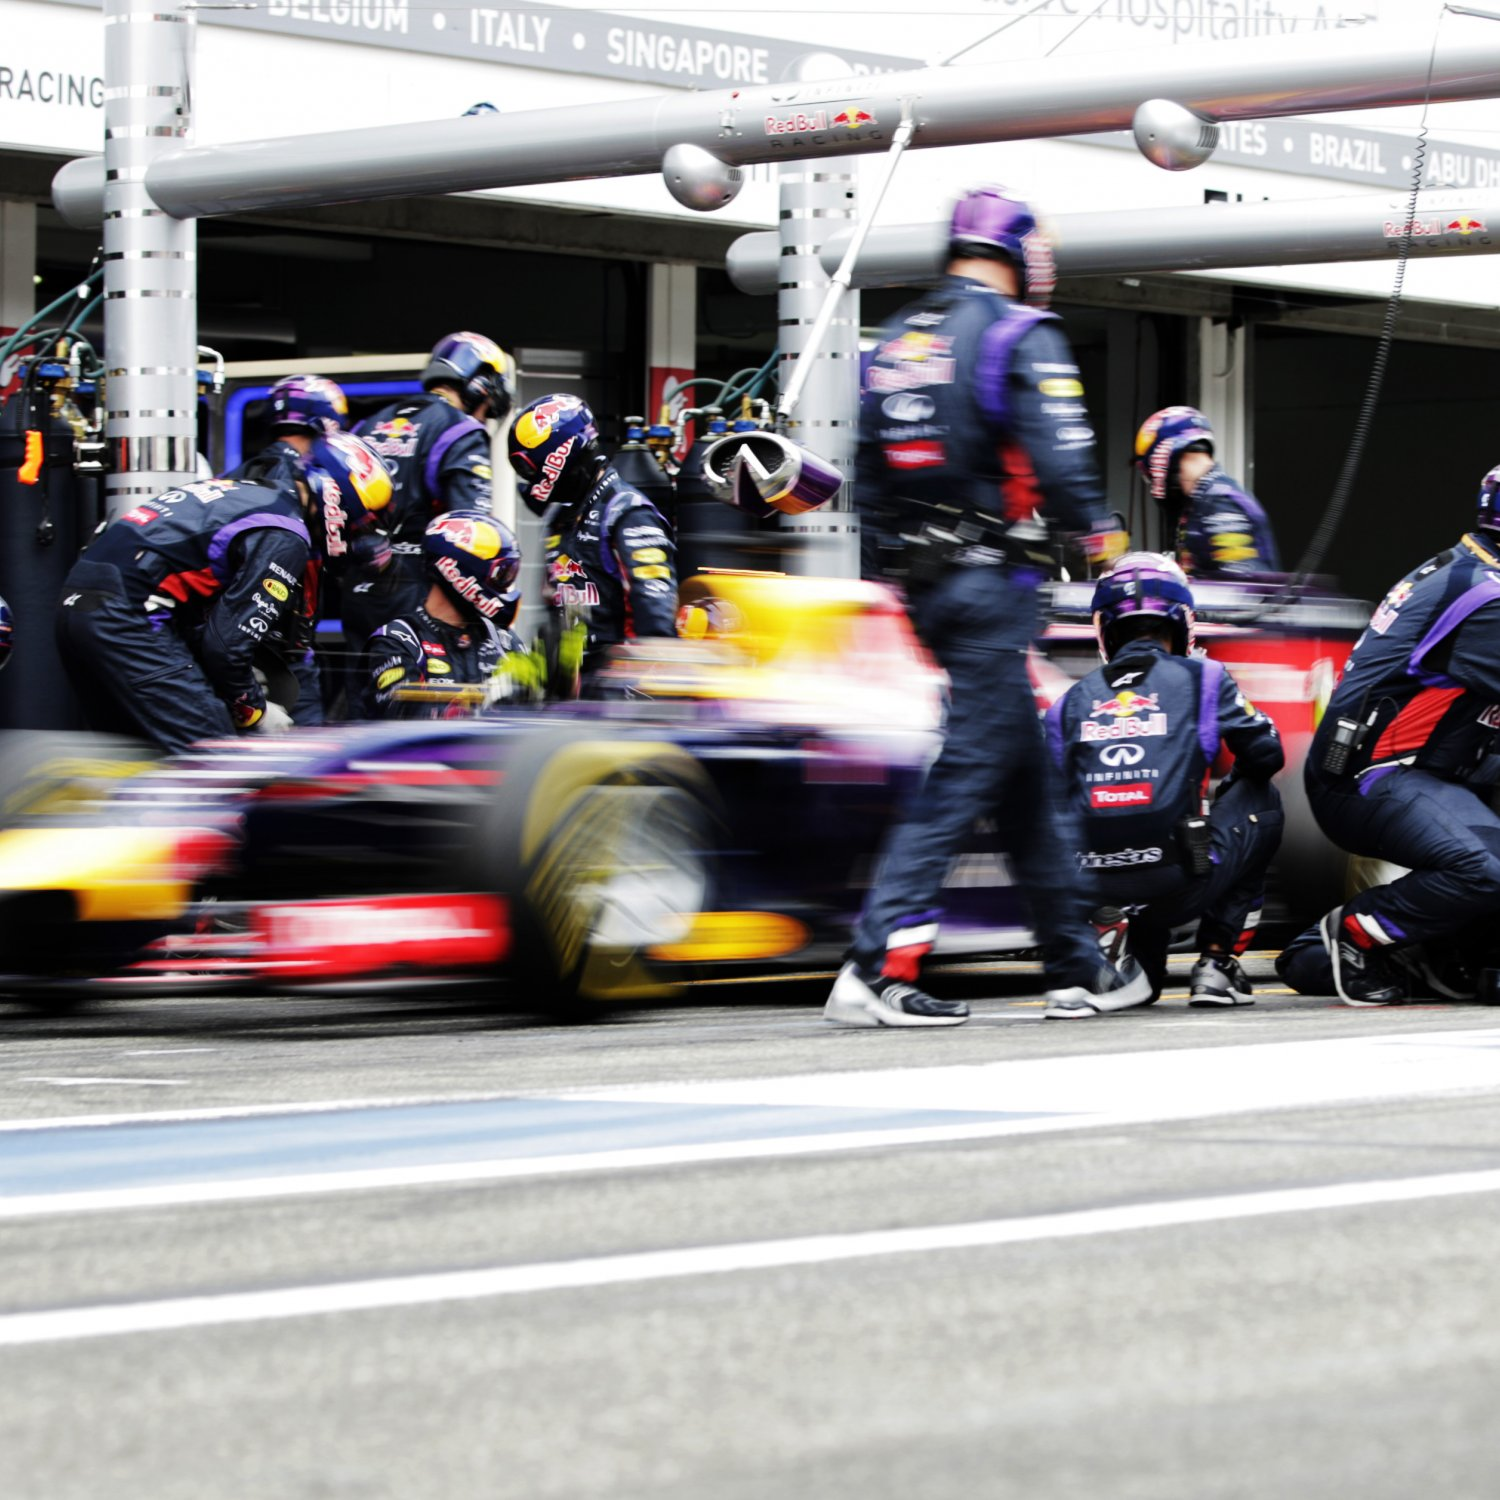 The Evolution Of Formula 1 Pit Stops: Speed And